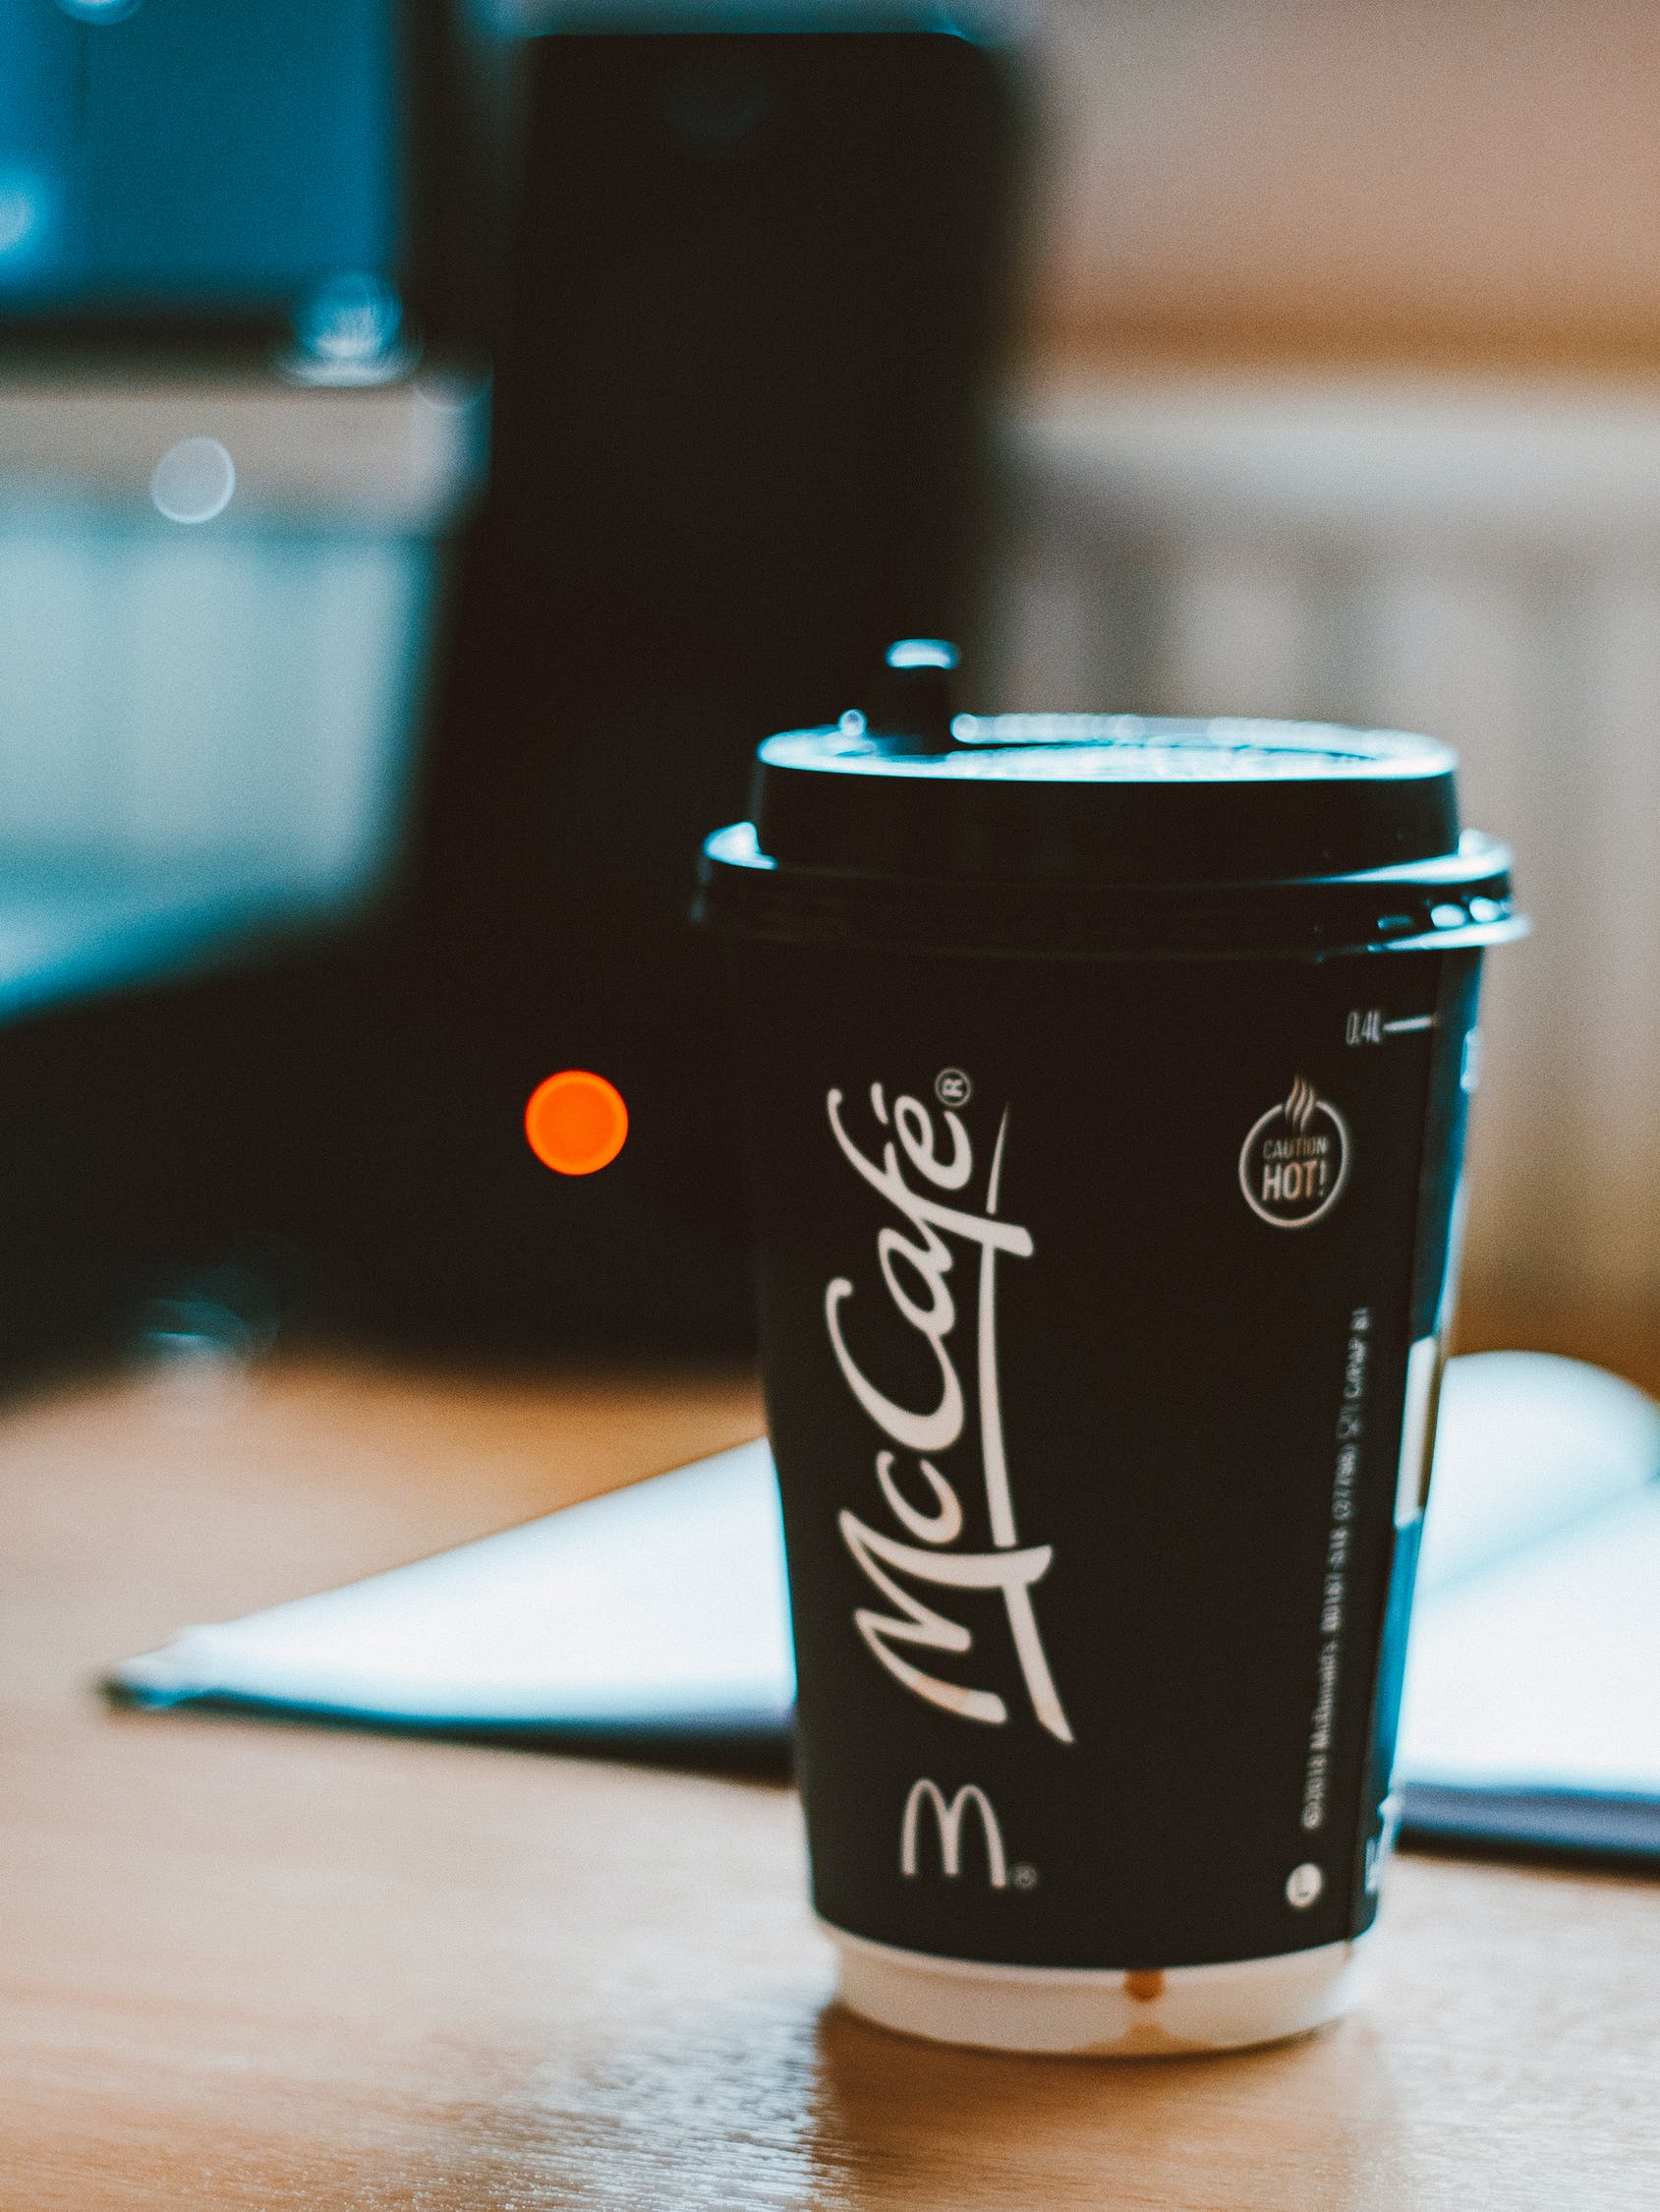 Can you microwave a McDonald's coffee cup?